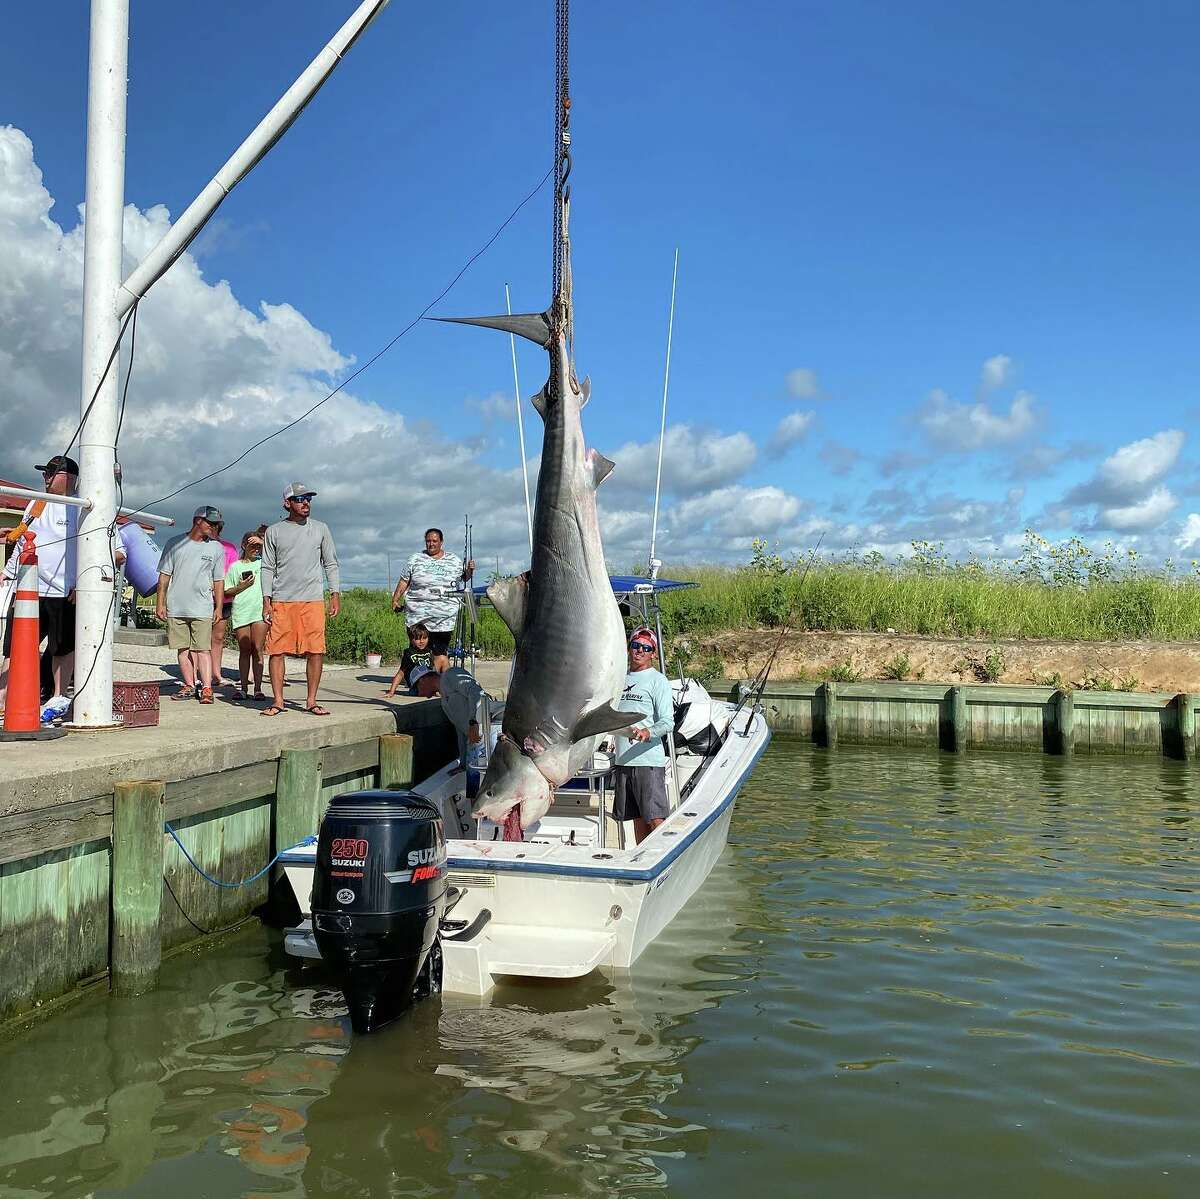 On July 1, Avery Fuller and his two brothers Clint and Tyler were out fishing about 40 miles off the coast of Galveston when he caught a 1,000-pound, 12-foot tiger shark.